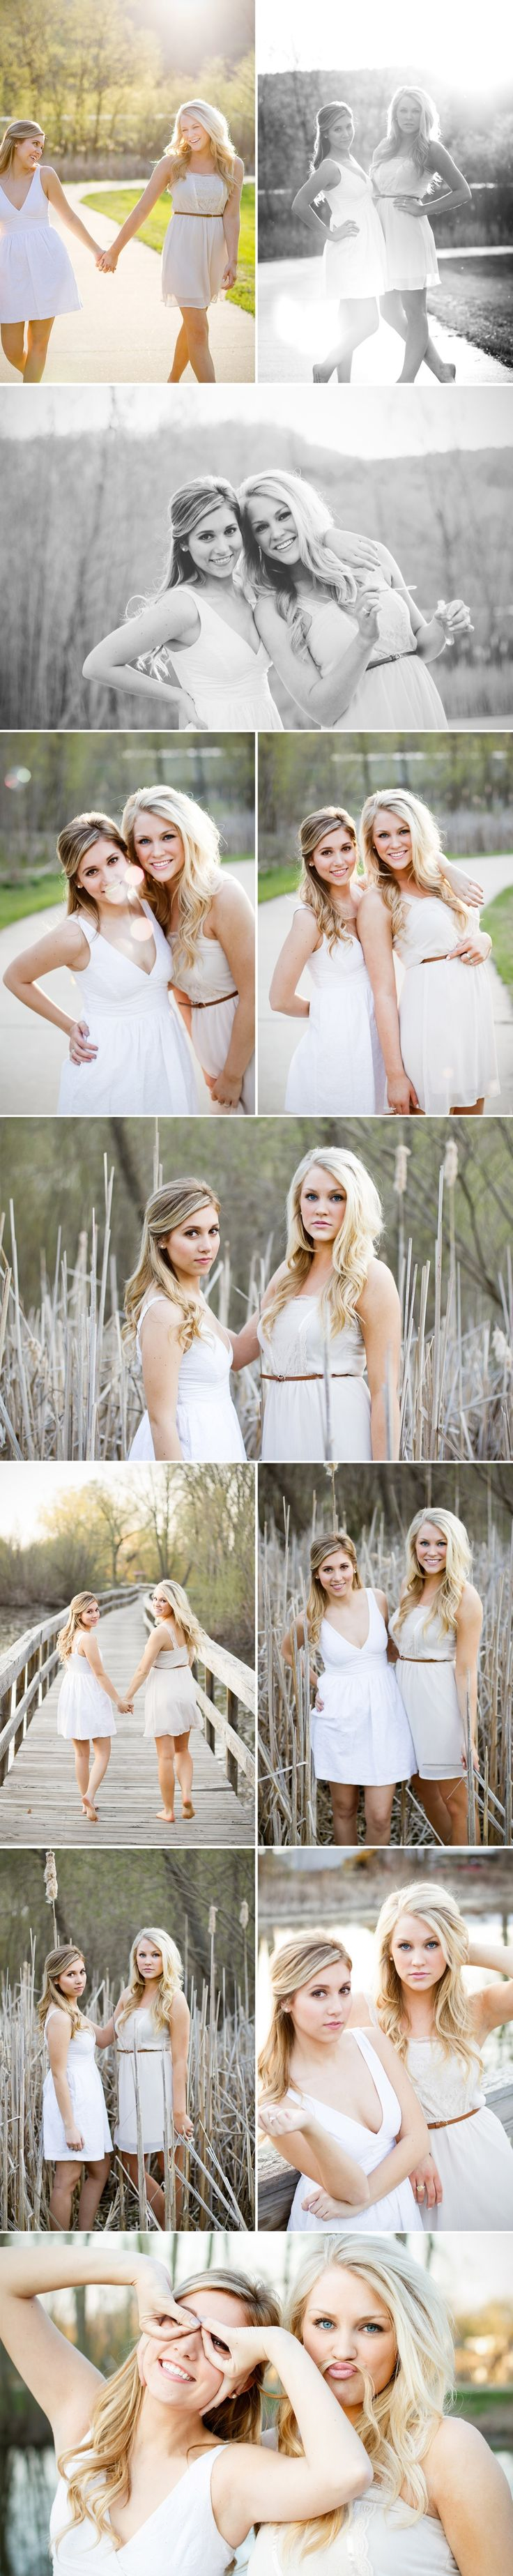 Best friend photo shoot #awesome